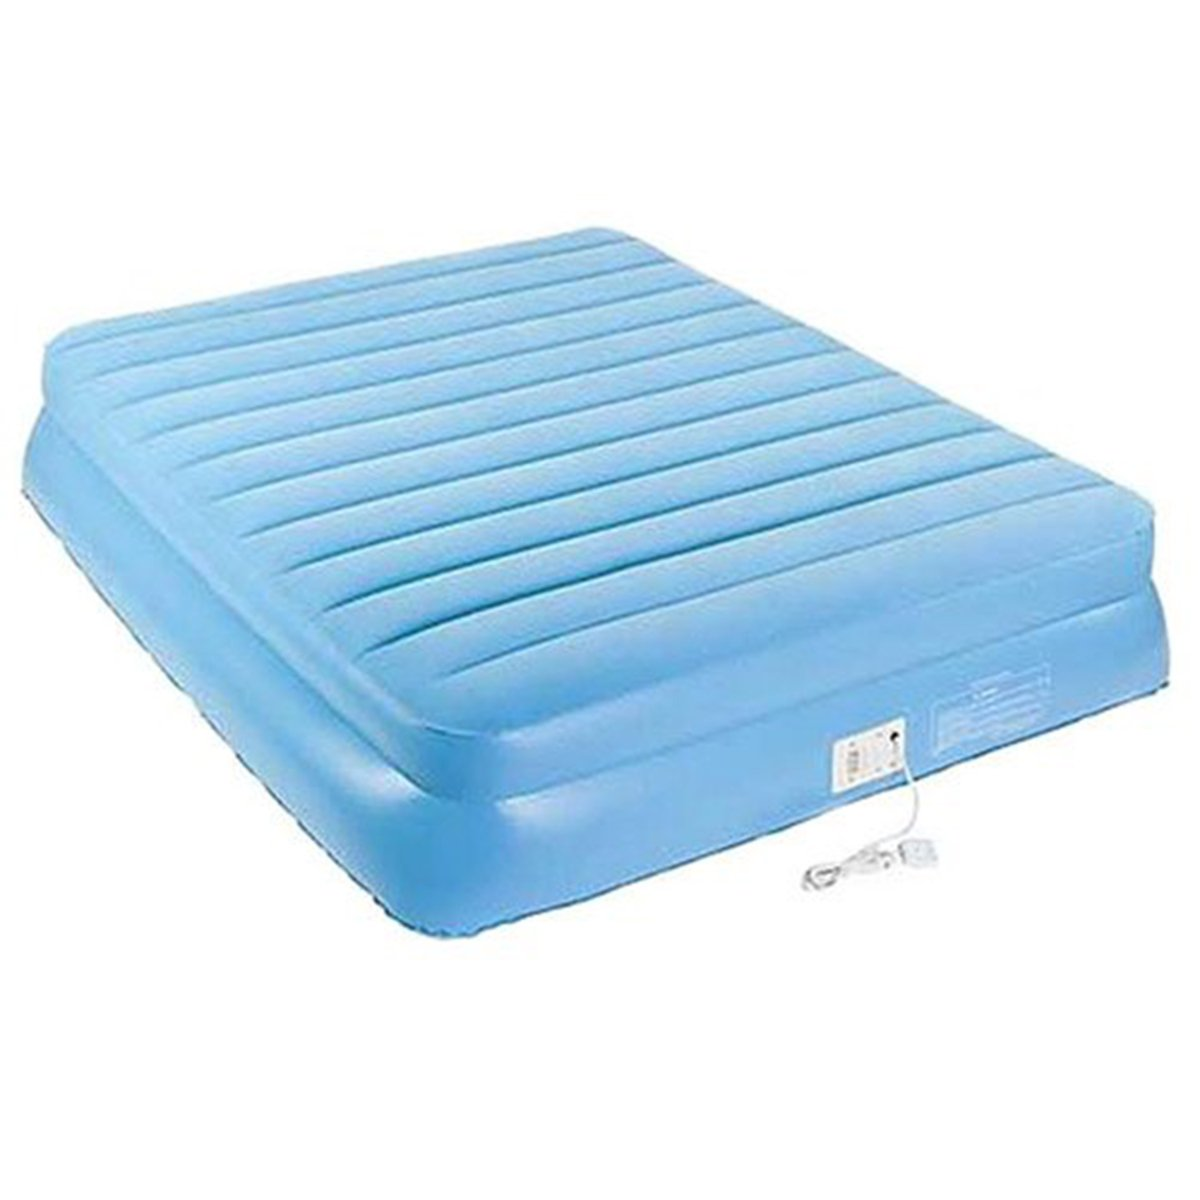 AeroBed Full Size Air Bed with Built-in 120V Pump, 18.5'' Raised Bed